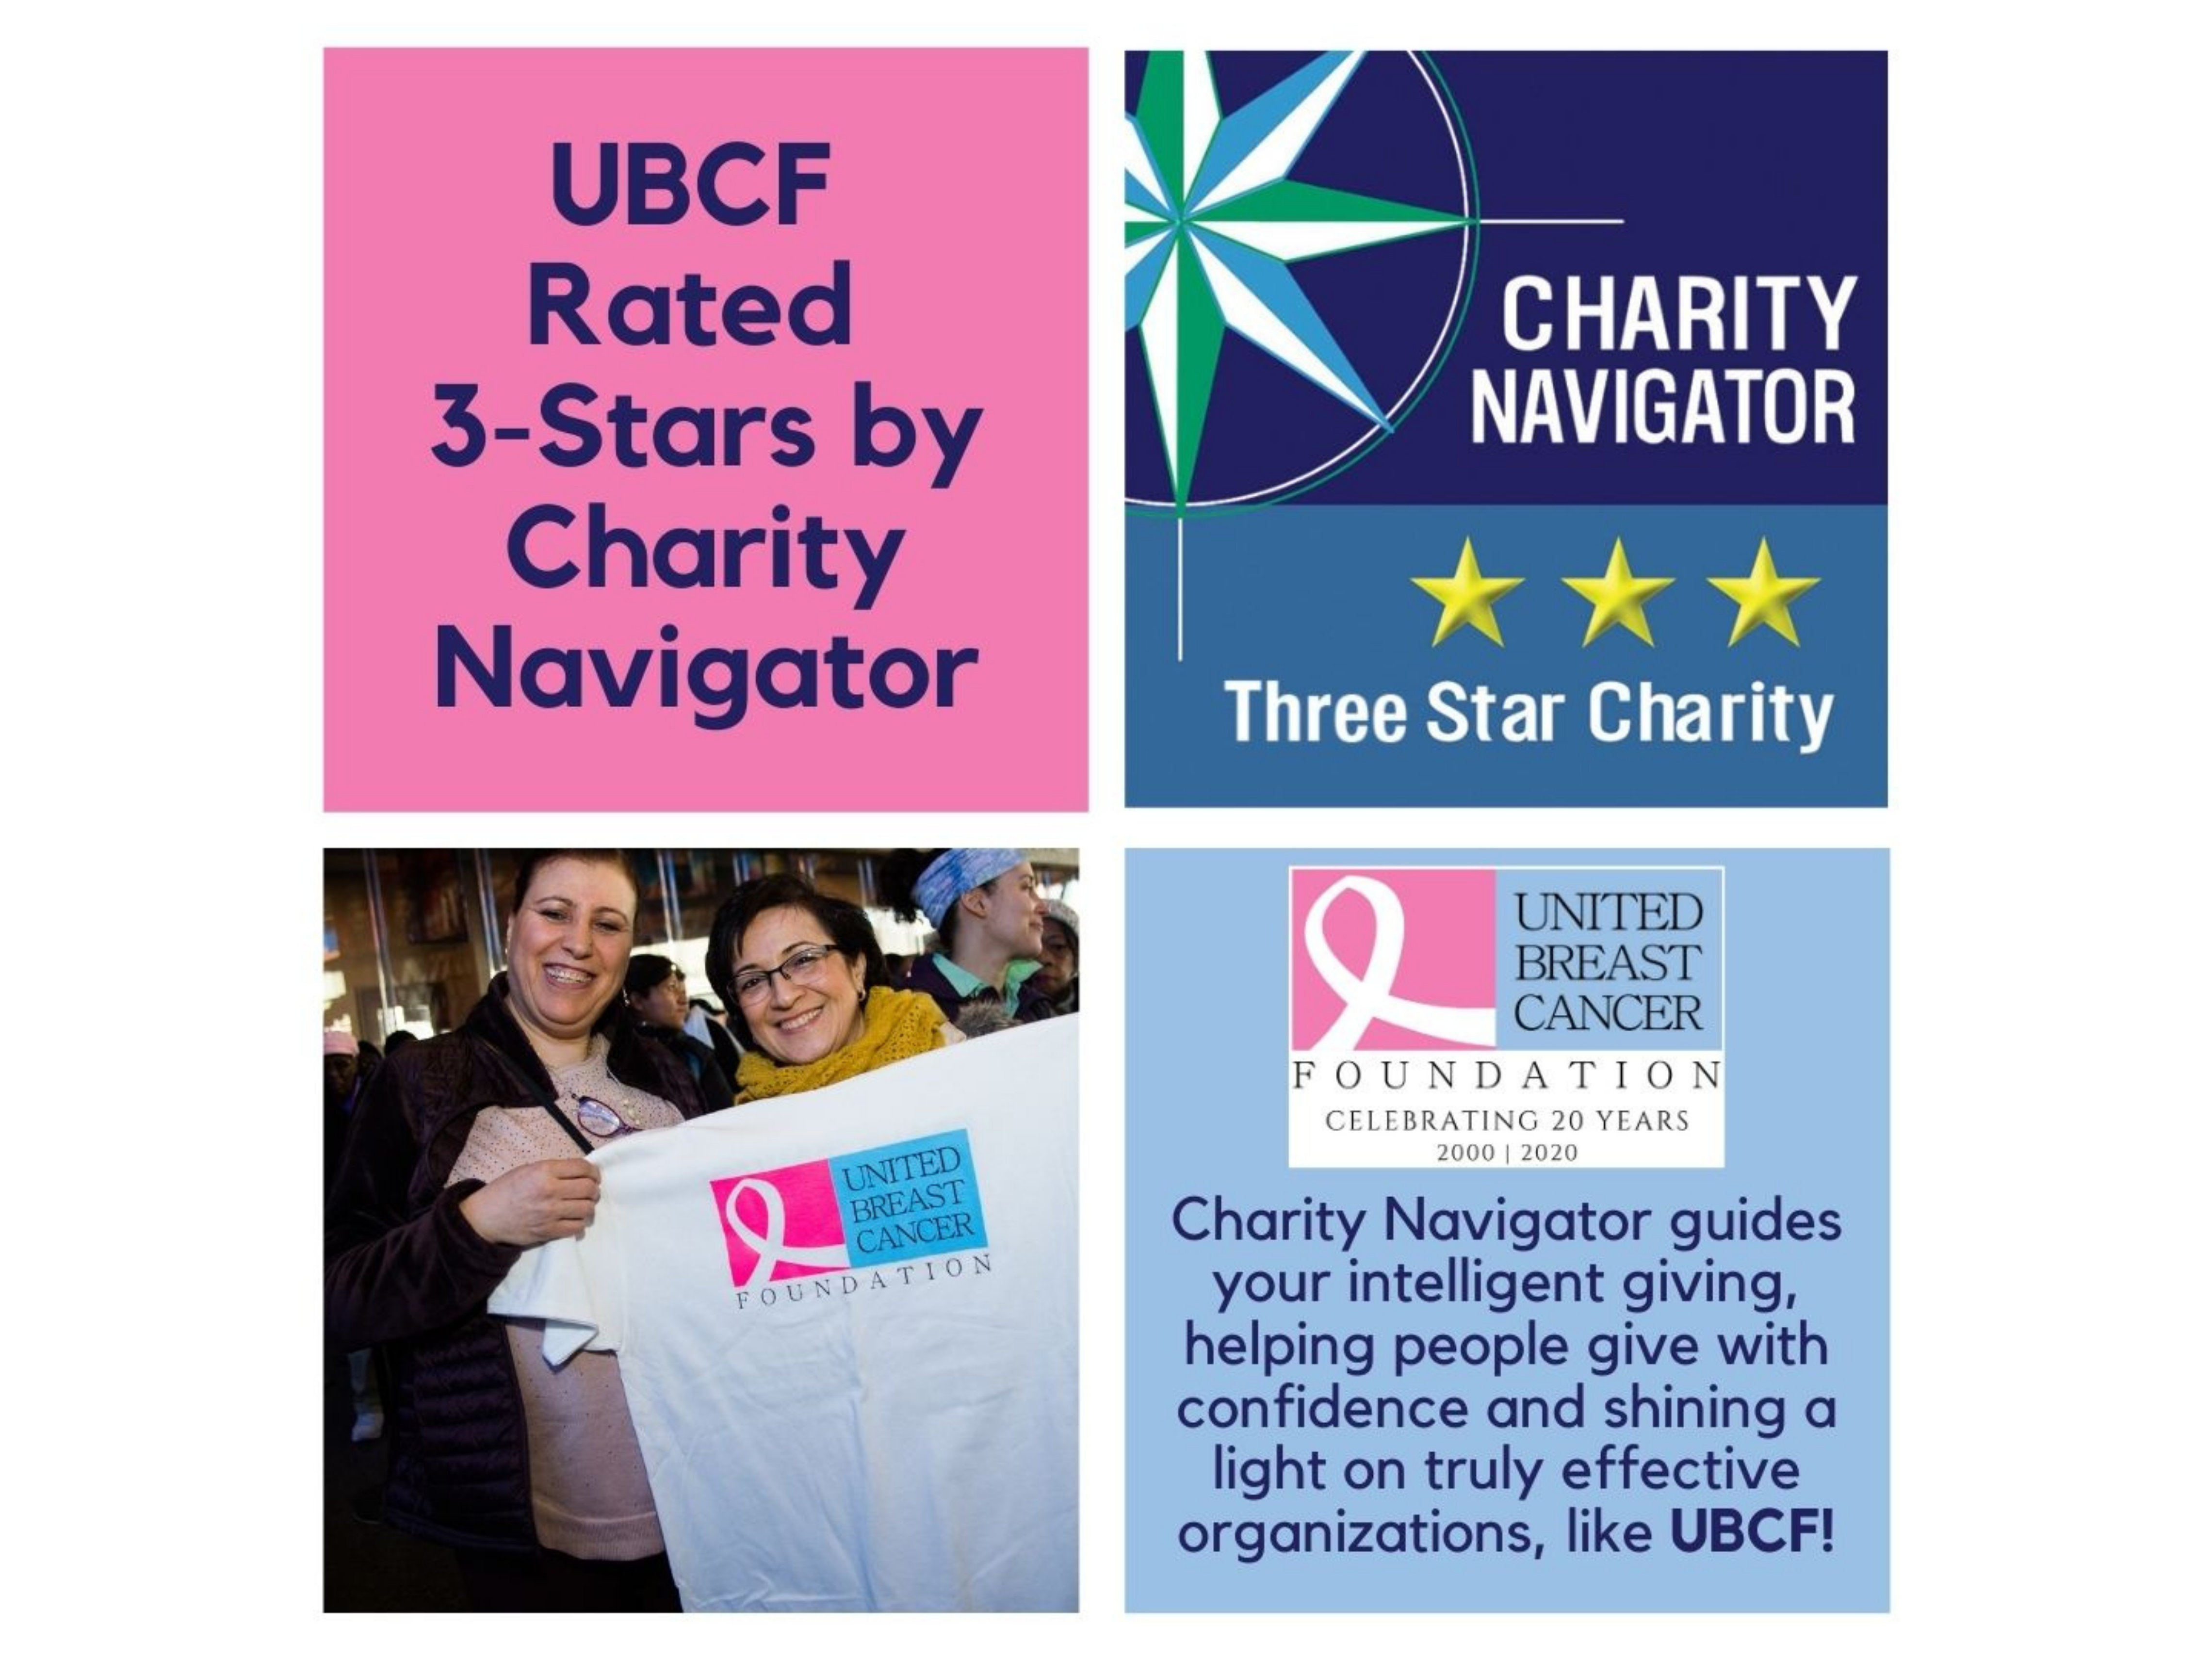 UBCF Charity Navigator 3-Star Rating